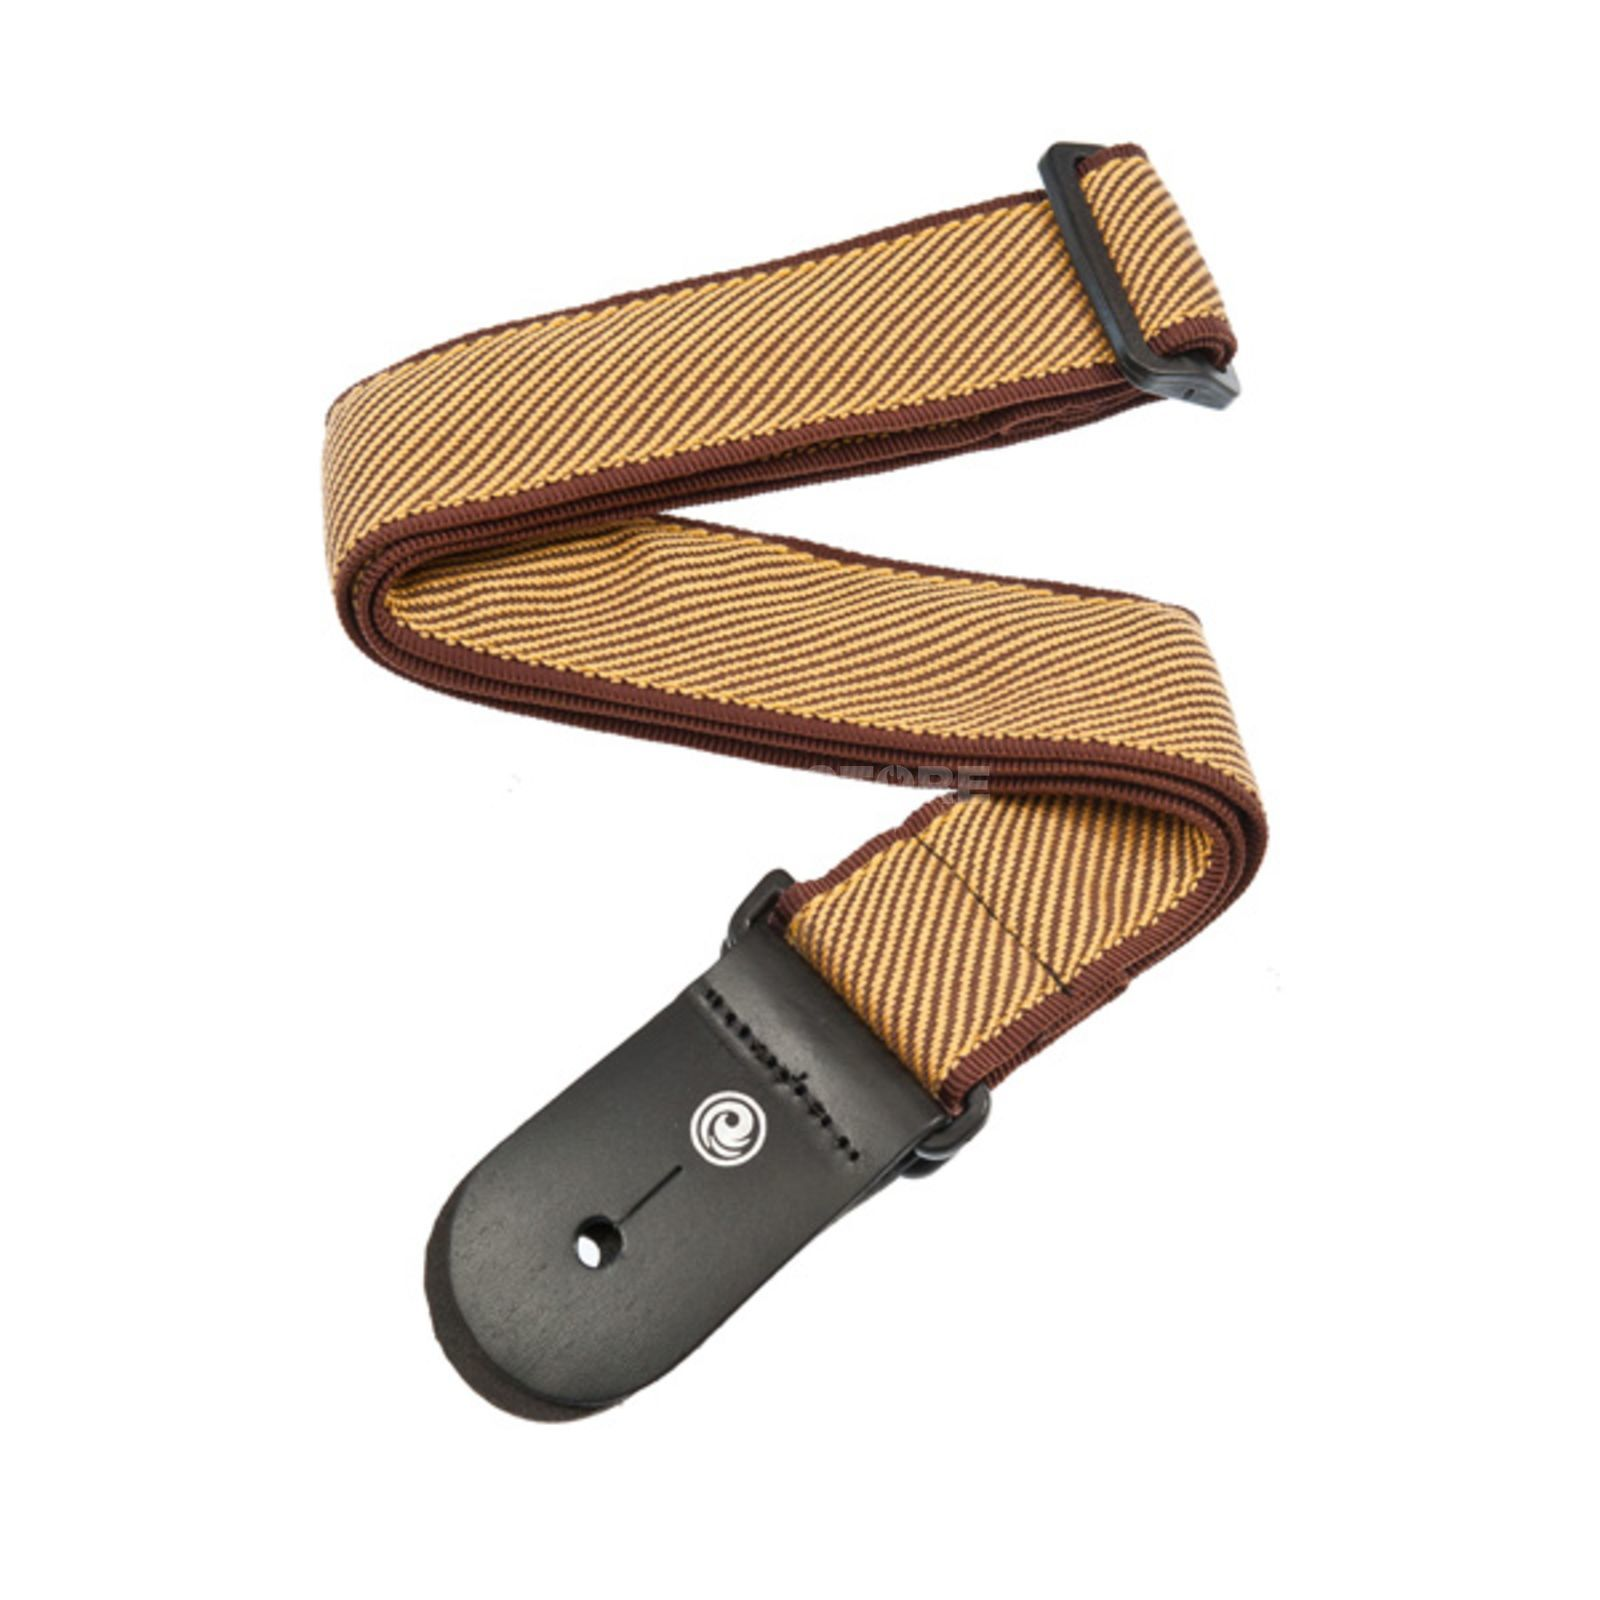 D'Addario Planet Waves Woven Guitar Strap, Tweed    Produktbillede